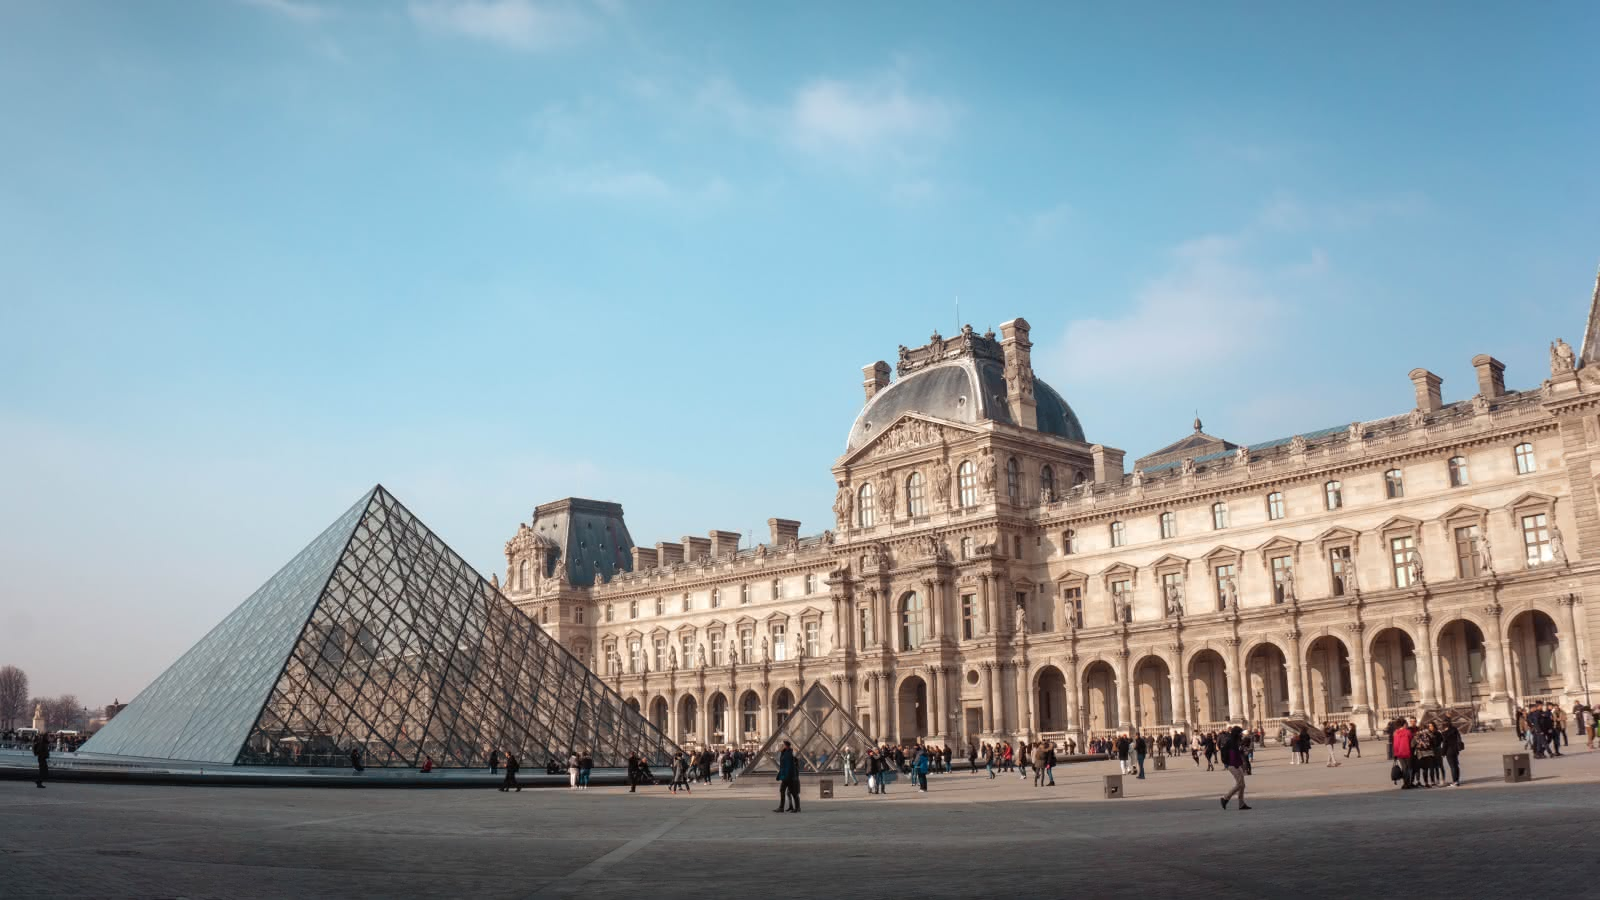 Visiting the Louvre grounds during the Paris Free Tour